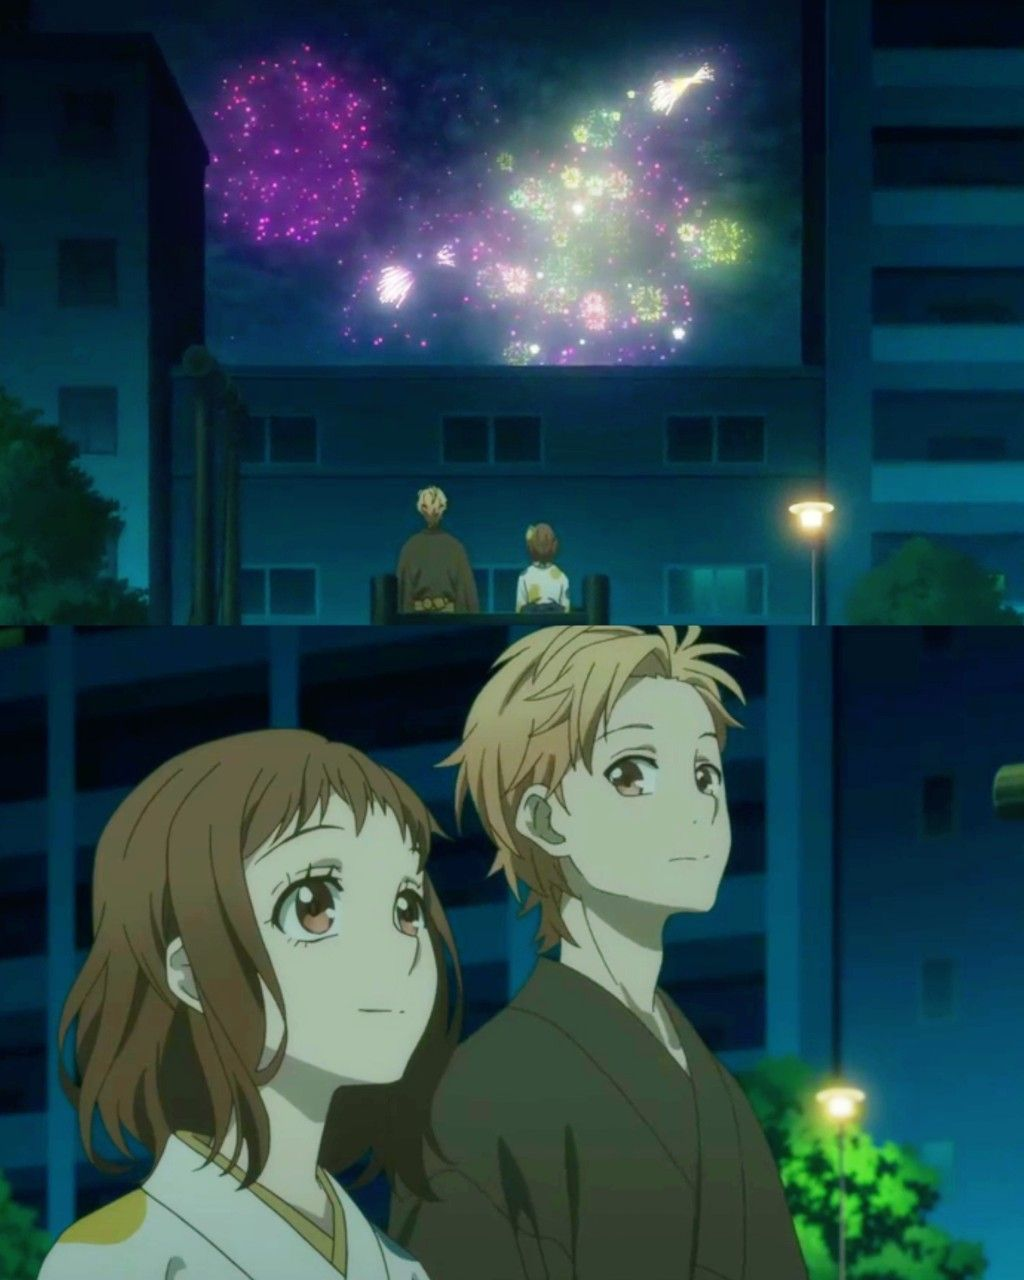 Our Love Has Always Been 10 Centimeters Apart : always, centimeters, apart, Serizawa, Haruki, Always, Apart, Anime, Romance,, Romance, Anime,, Shows